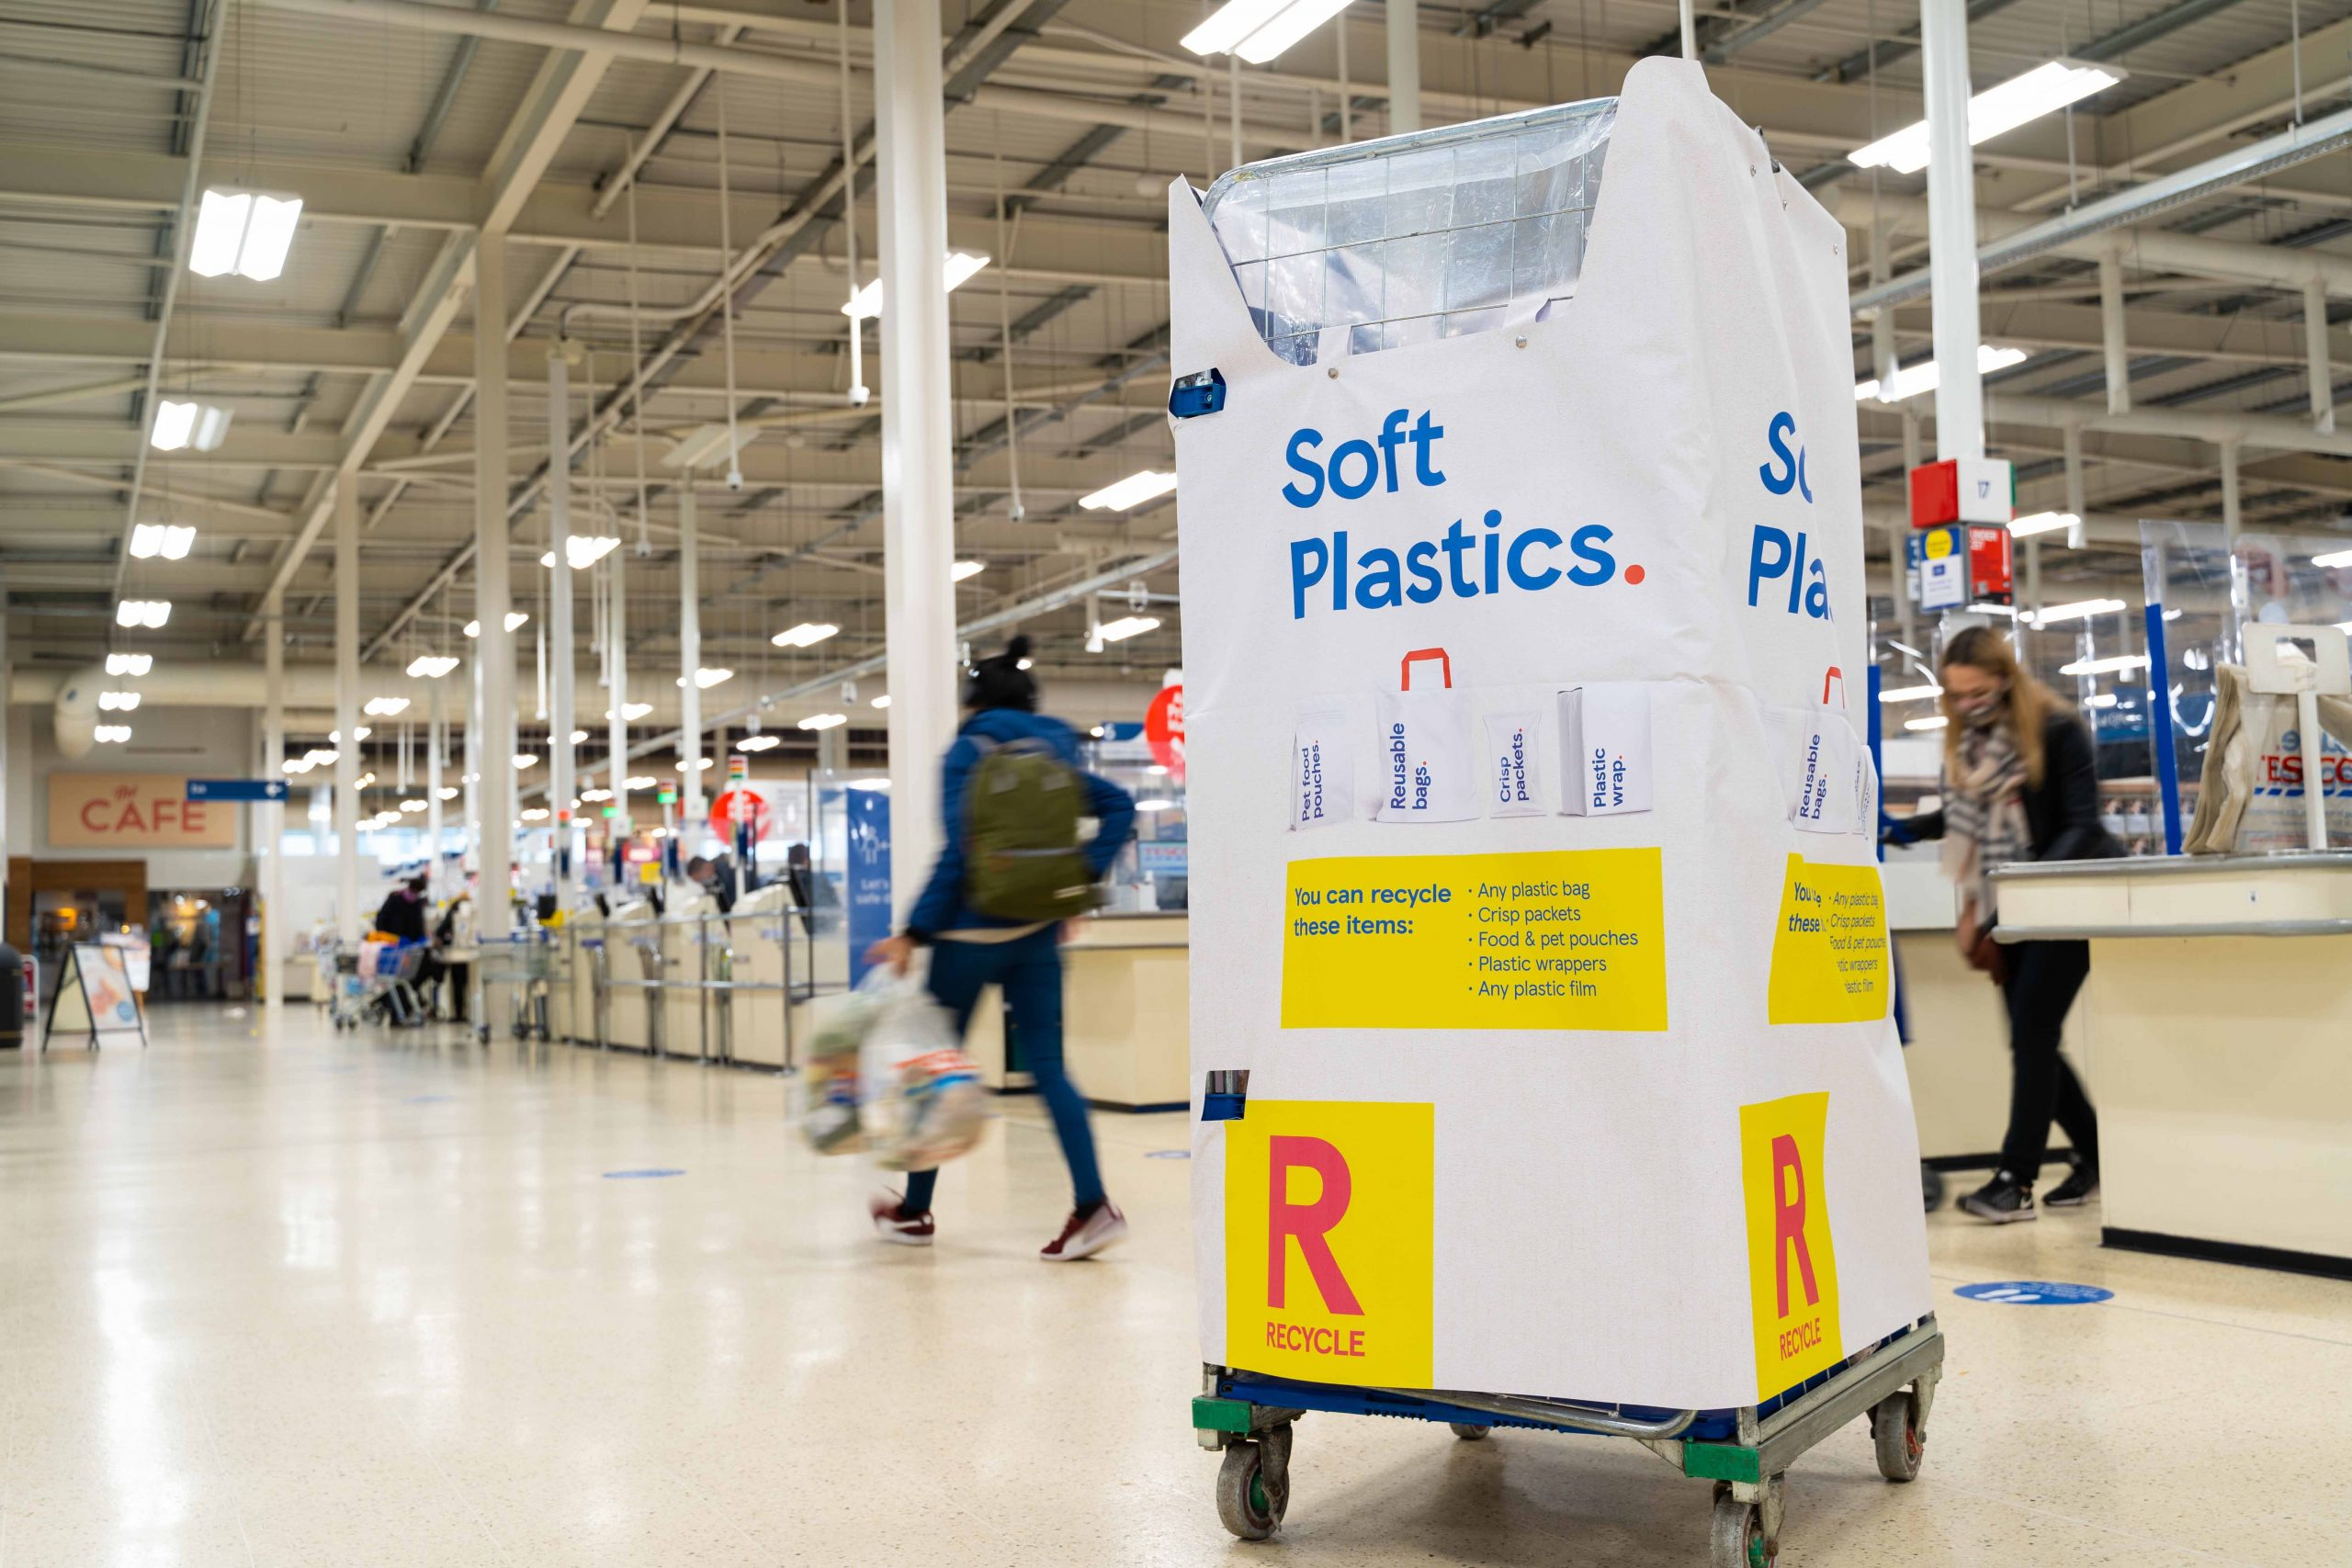 TESCO – Soft plastics – Featured in Sky News